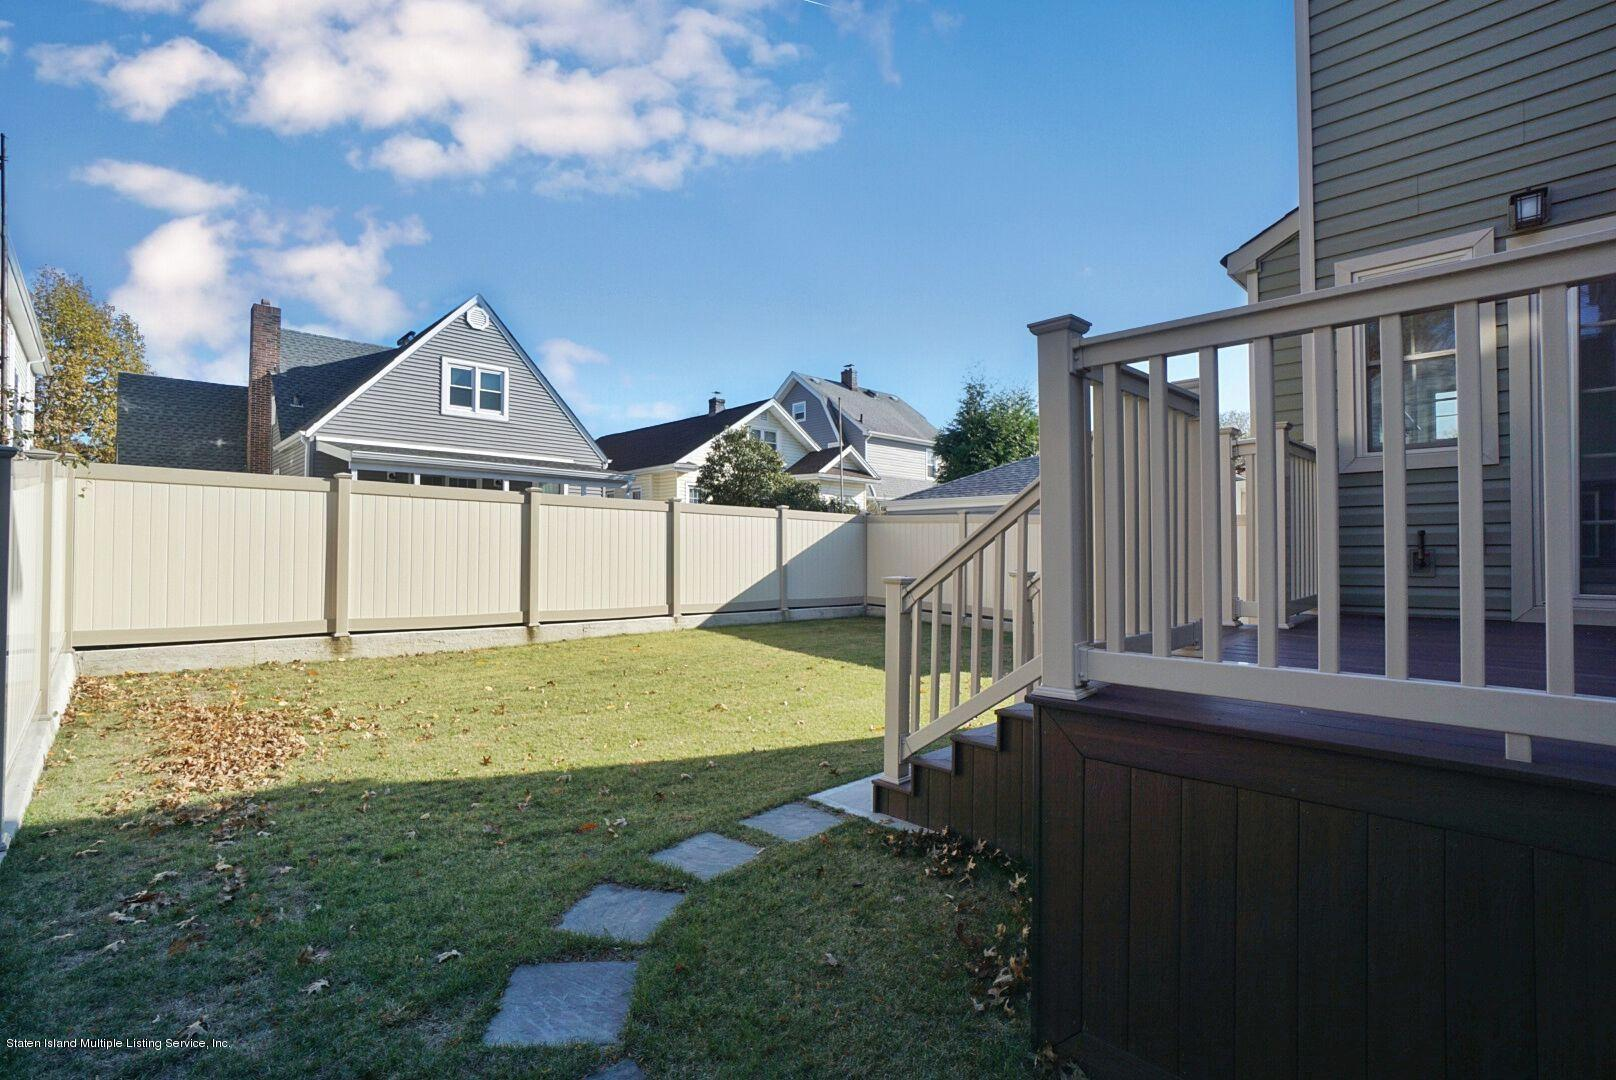 Single Family - Detached 165 Woolley Avenue  Staten Island, NY 10314, MLS-1128875-6